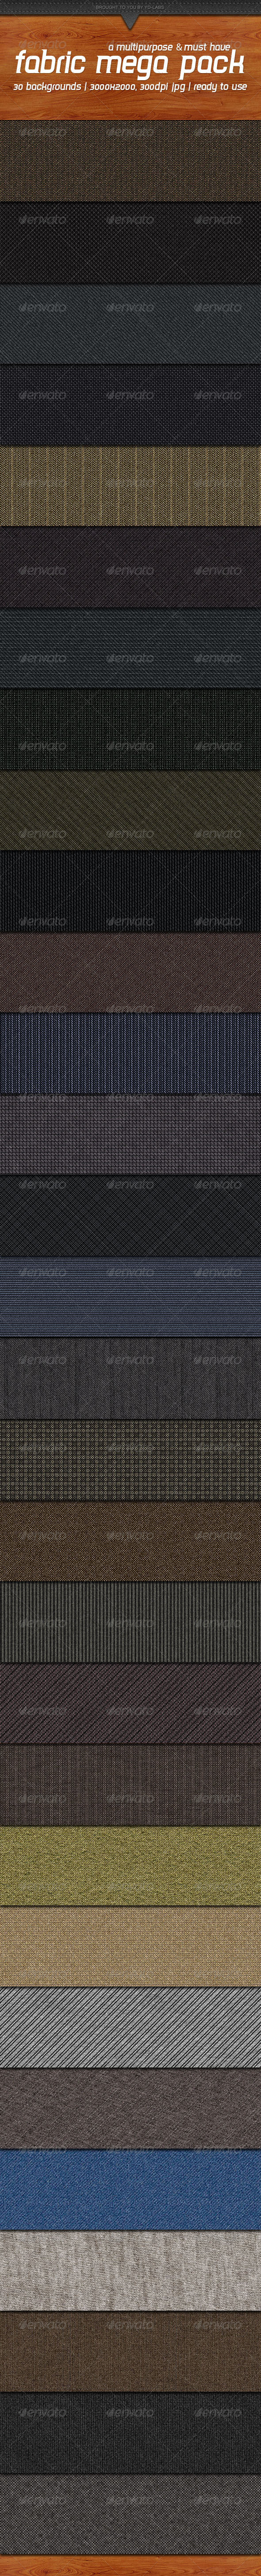 Fabric Mega Pack 2 - Patterns Backgrounds